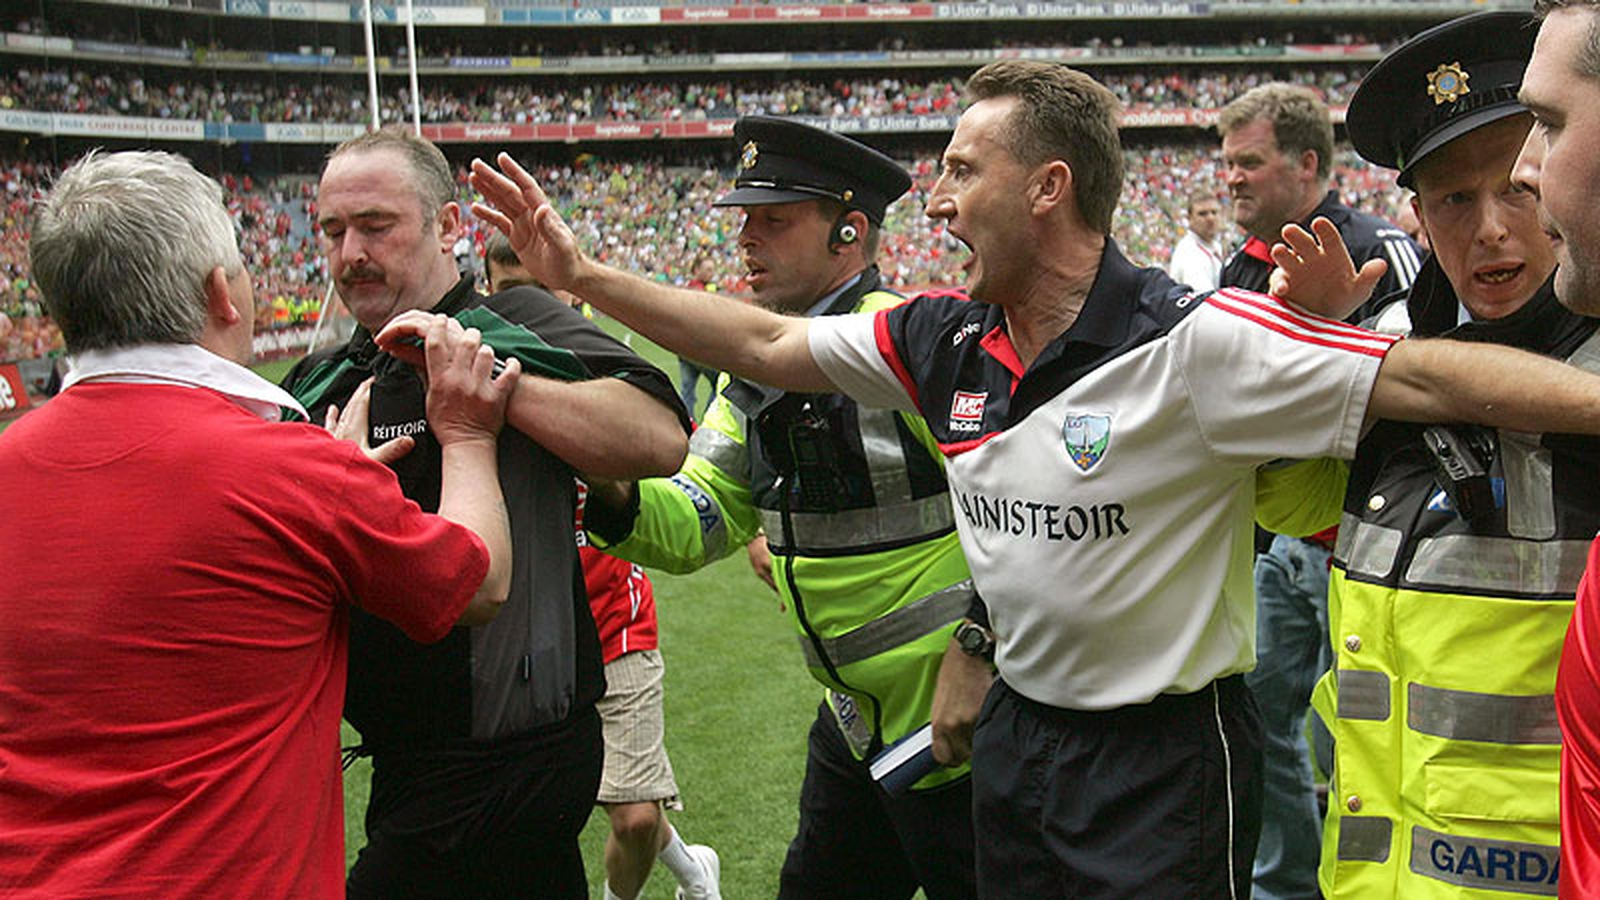 Image - Fitzpatrick tries to put himself between fans and referee Martin Sludden